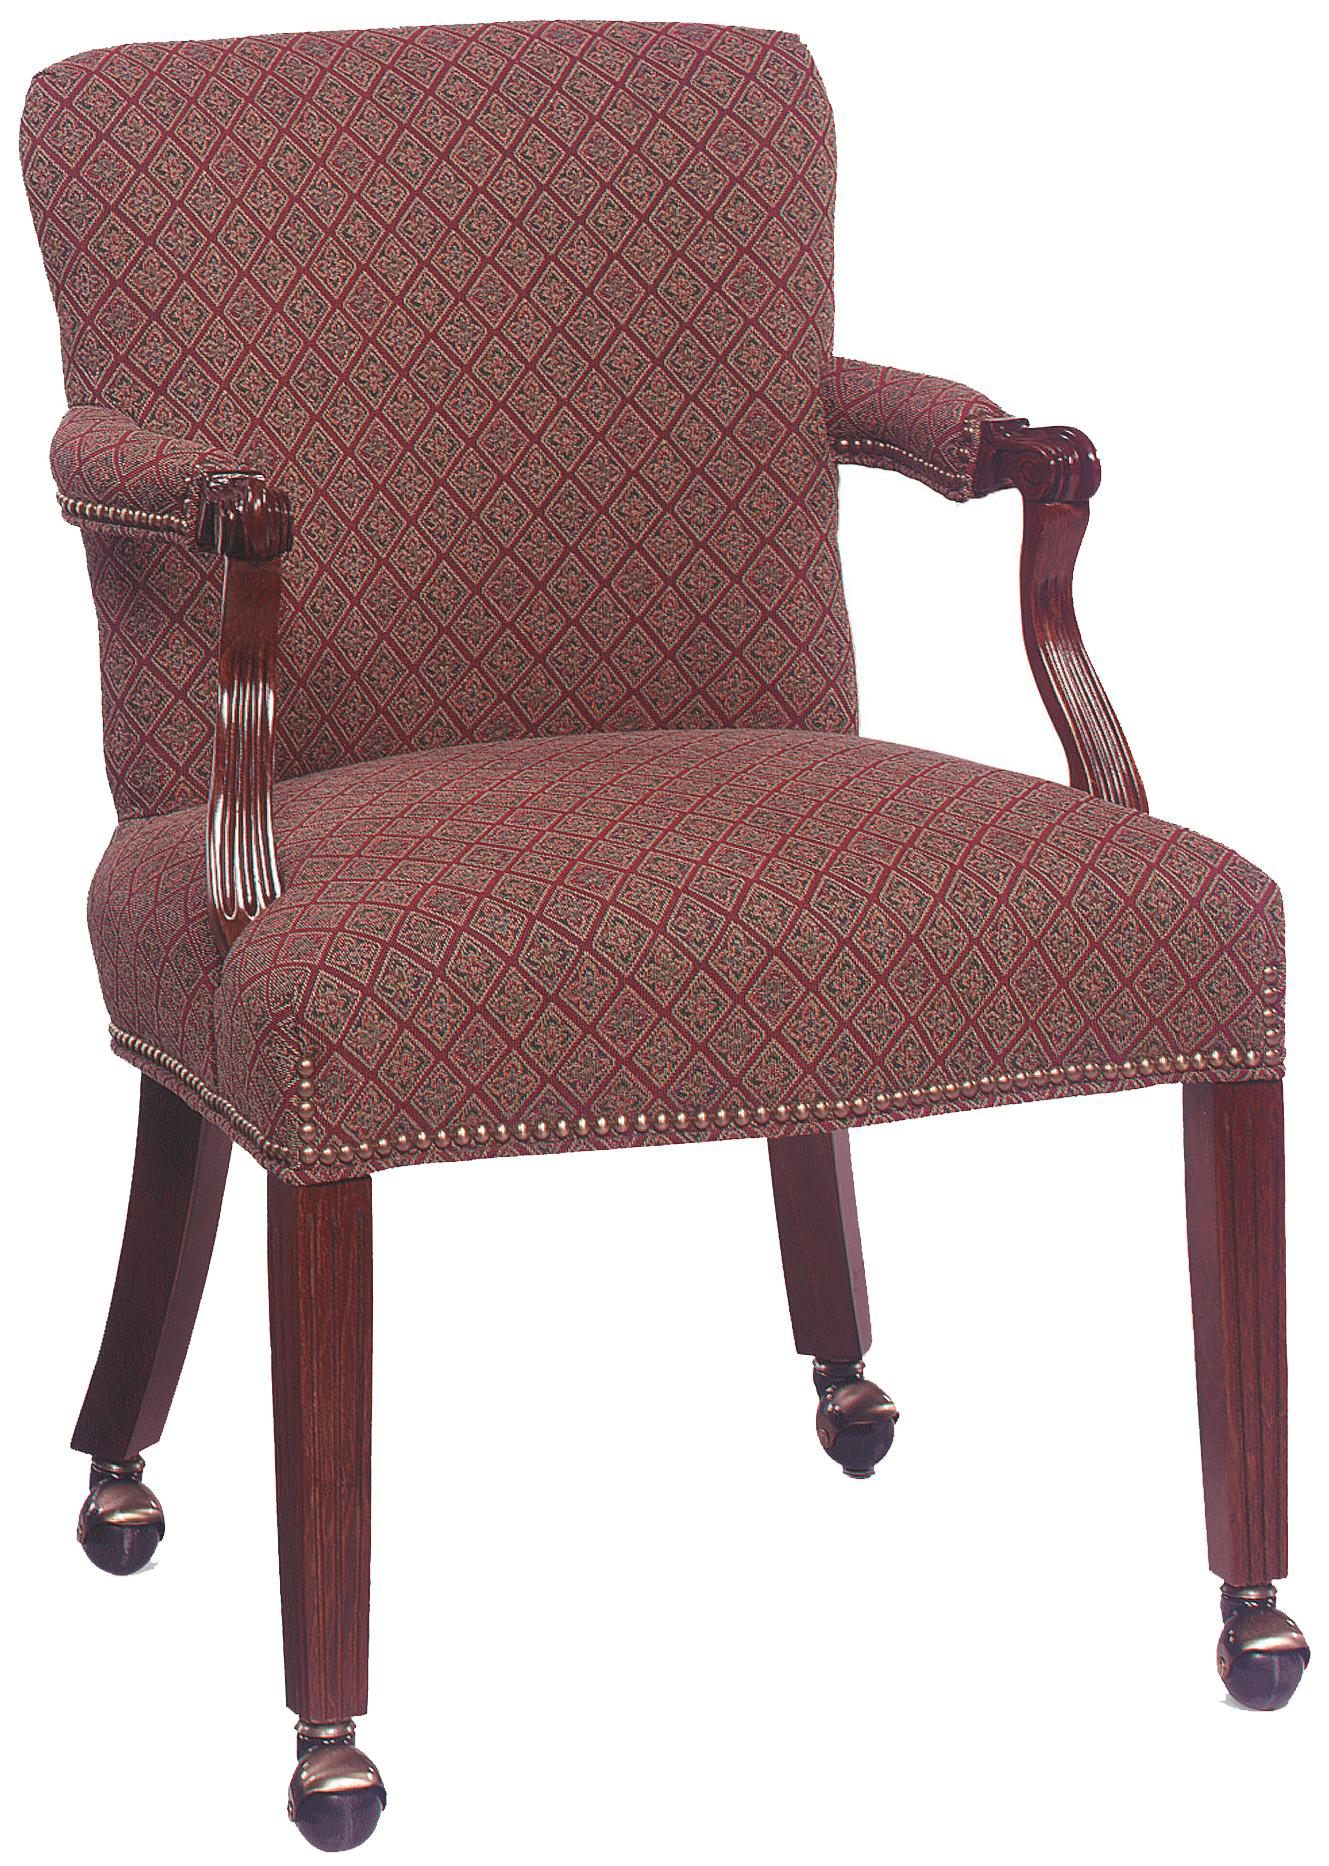 Fairfield Chairs Occasional Chair - Item Number: 1091-01